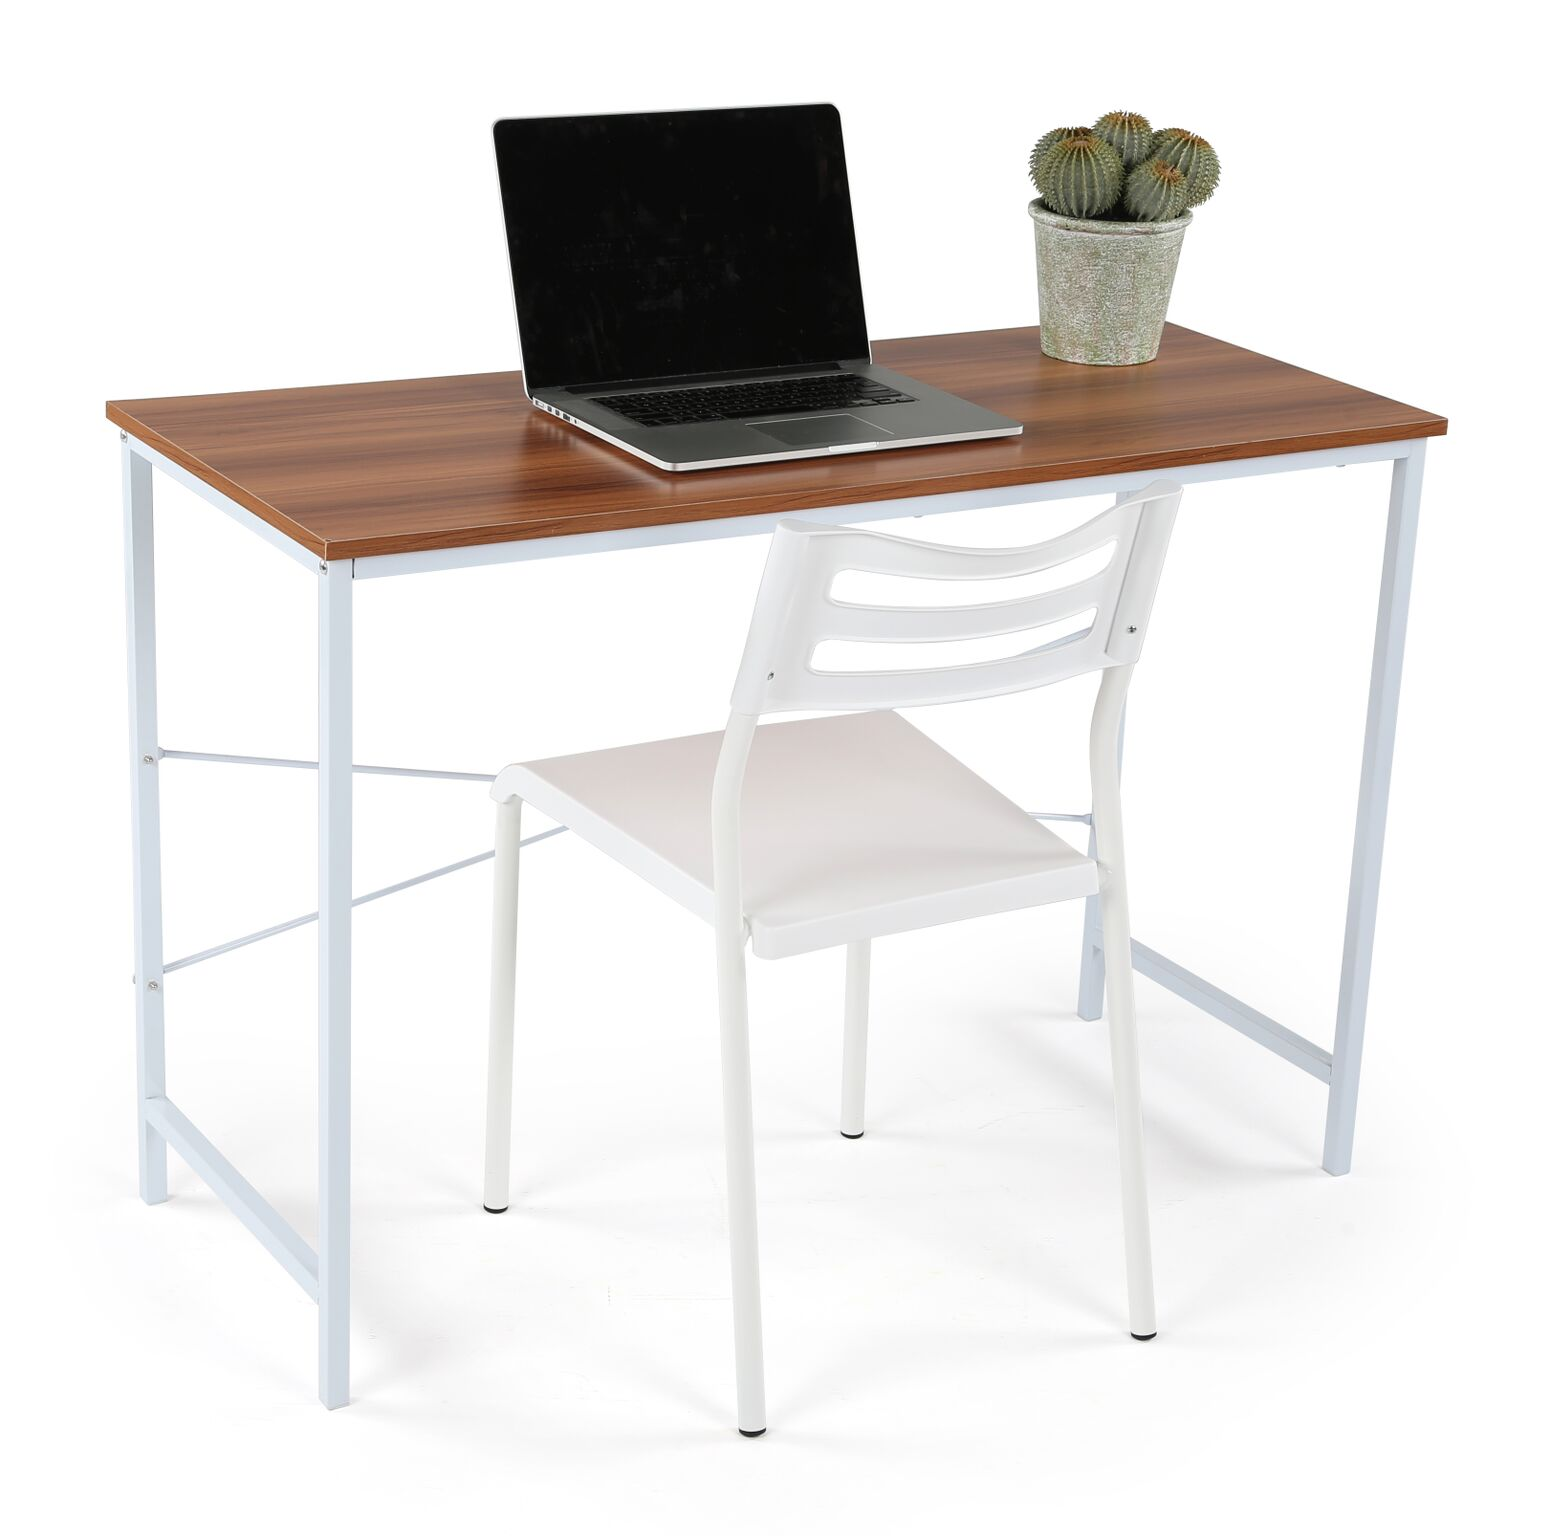 Captivating Lucky Theory Industrial Office Desk, White/Maple